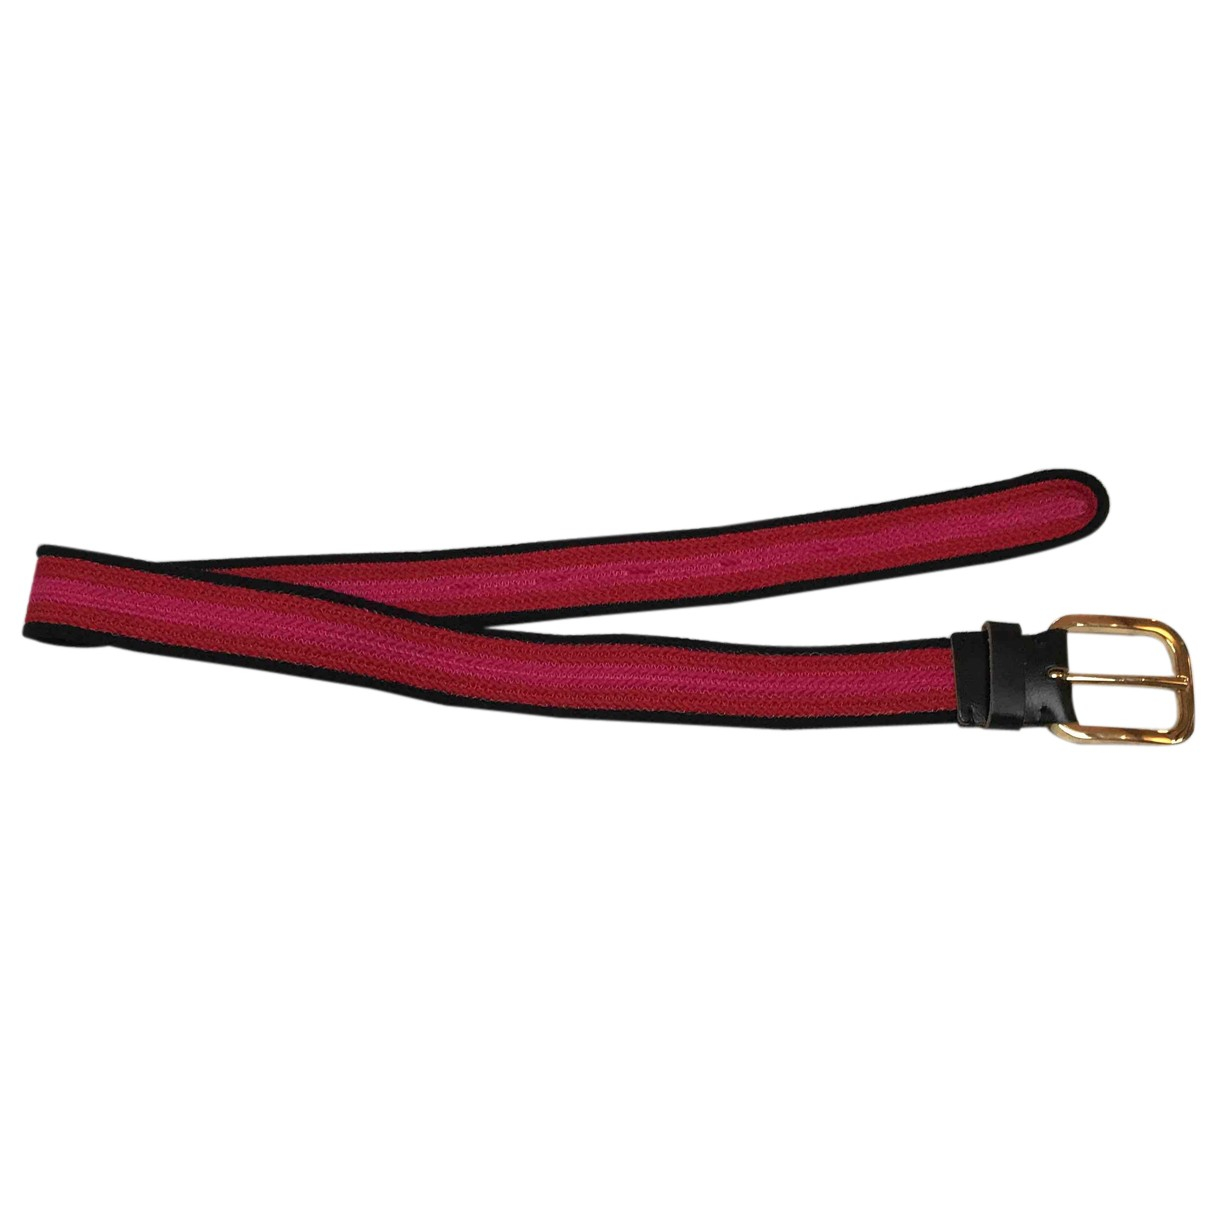 Marni N Pink Cloth belt for Women 75 cm